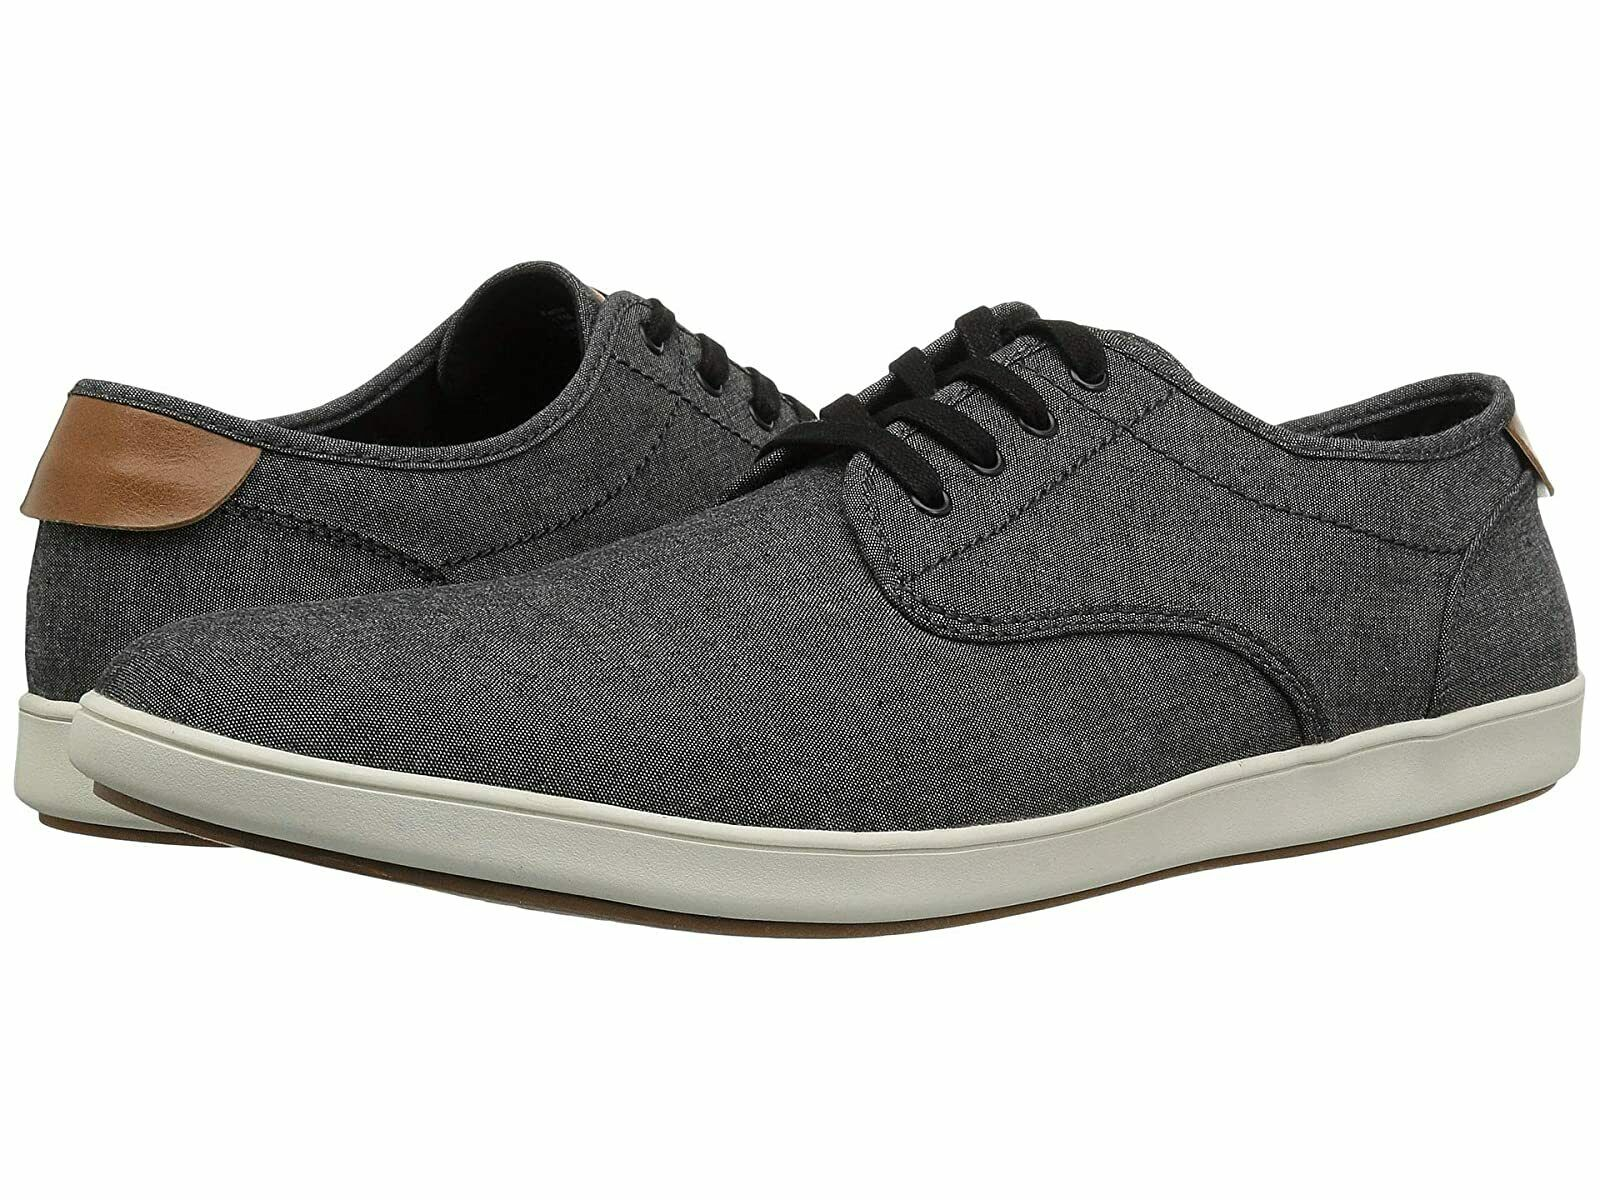 Man's Sneakers & Athletic Shoes Steve Madden Fenta